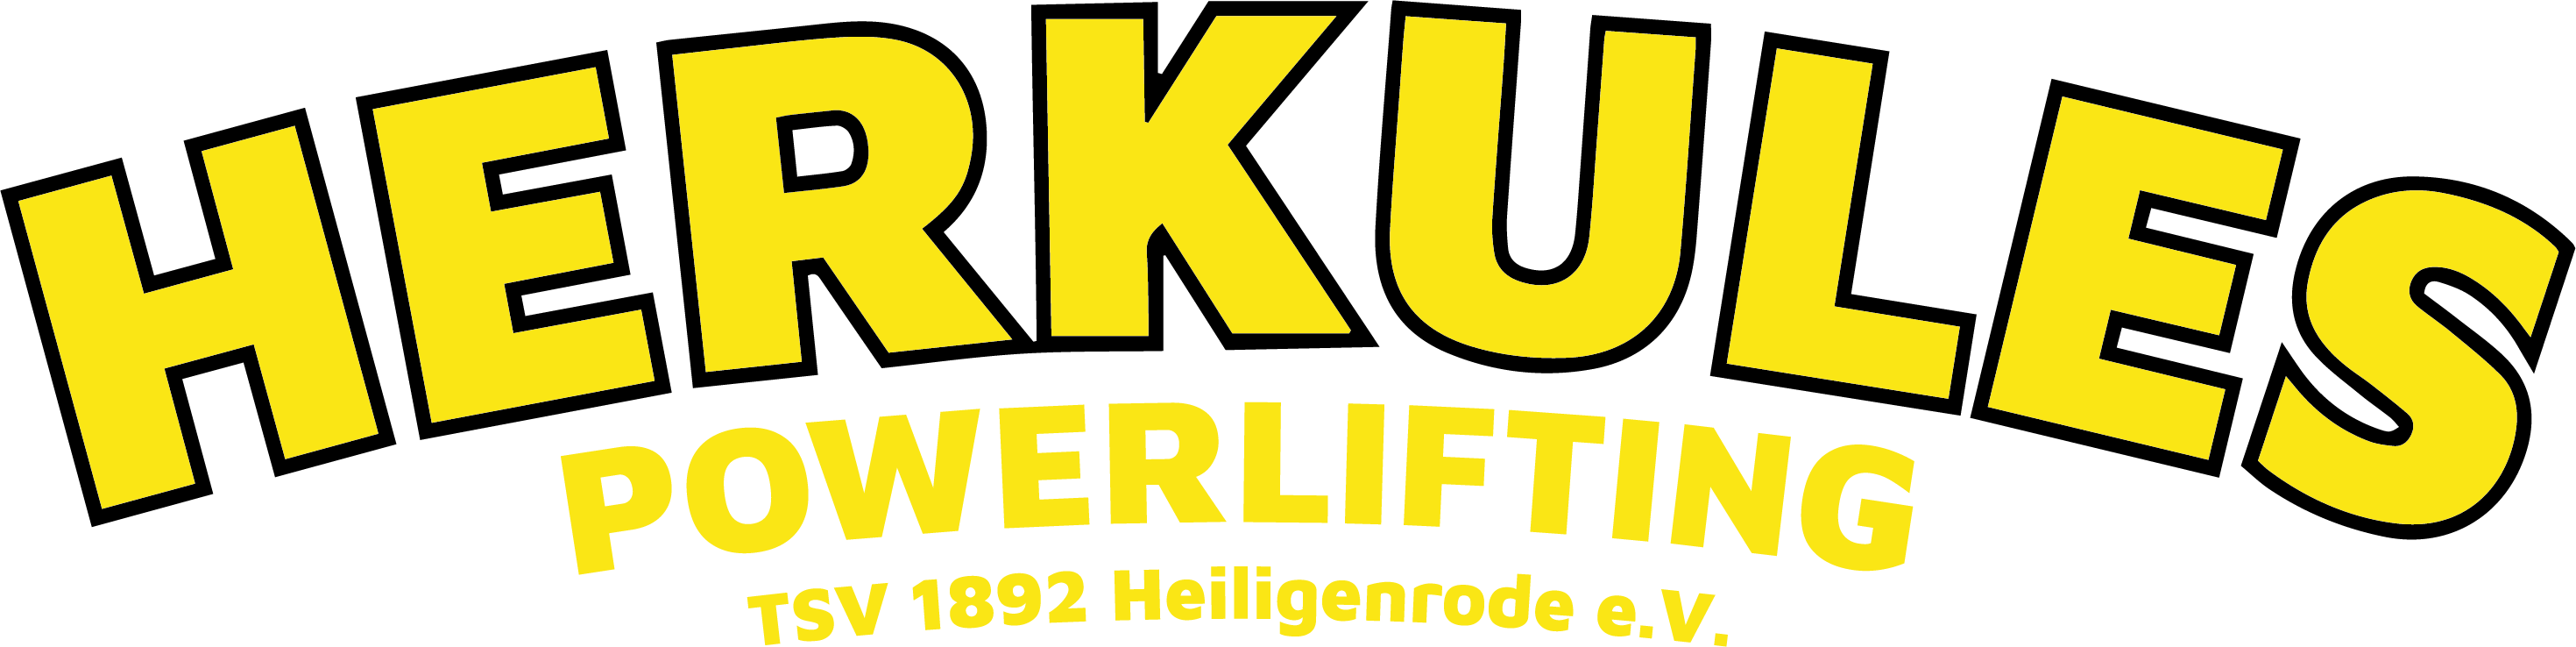 Herkules Powerlifting